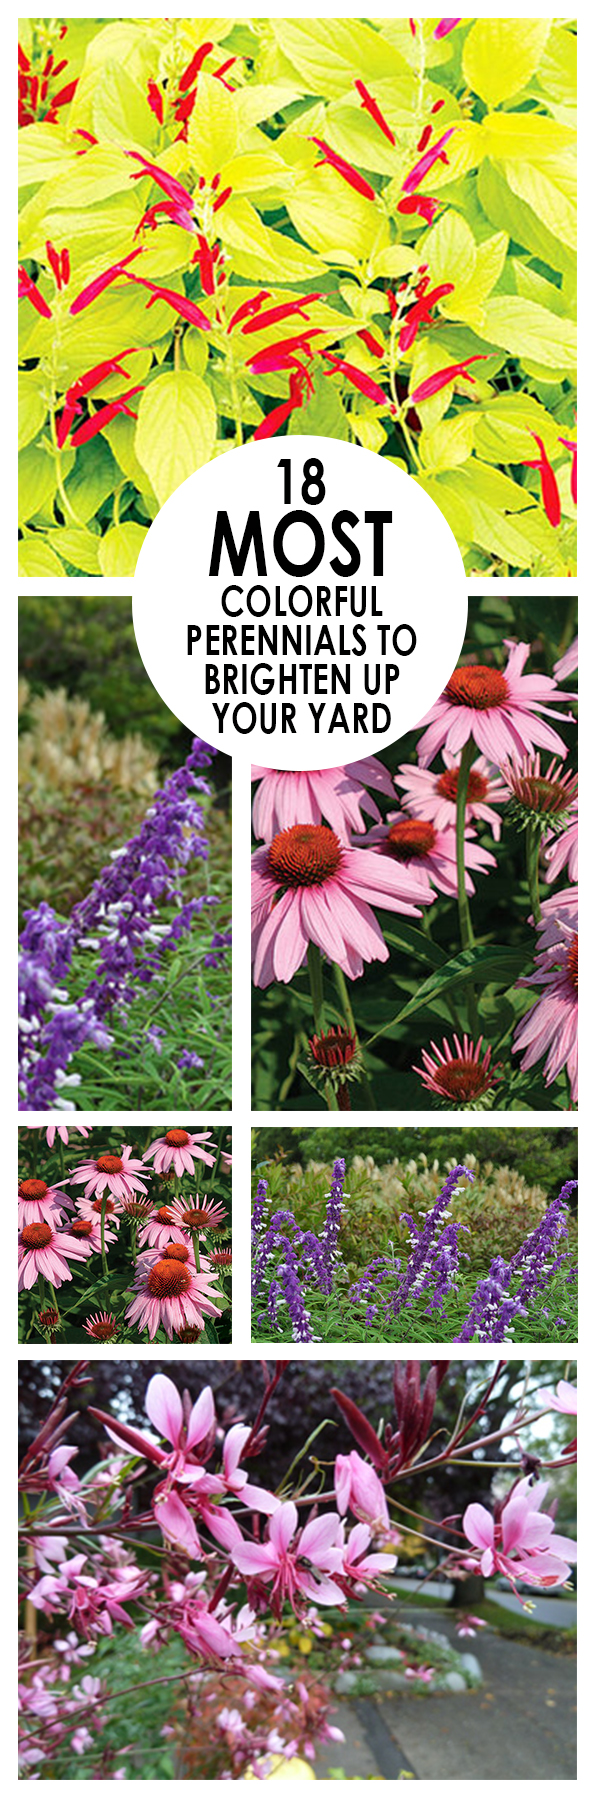 18 Most Colorful Perennials to Brighten Up Your Yard (1)